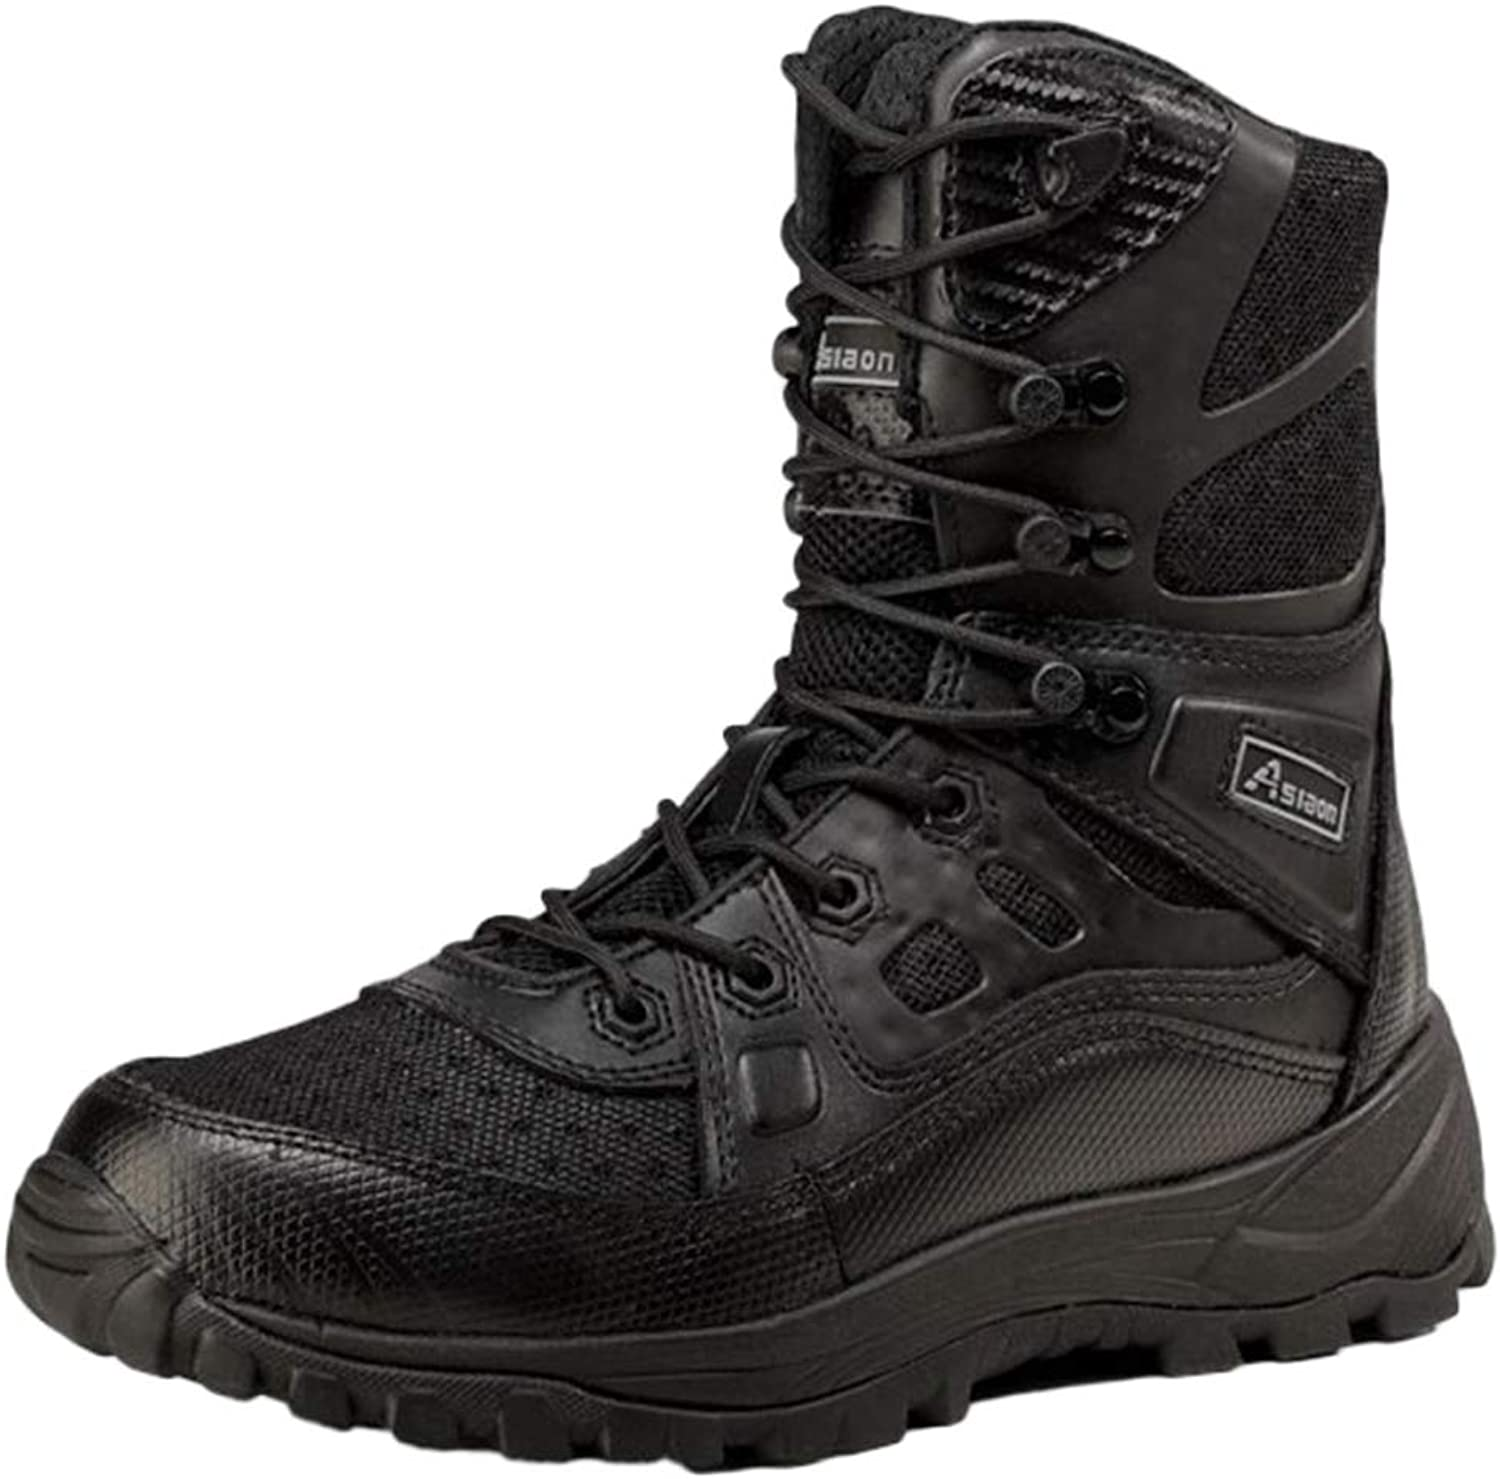 Men Boots Outdoor Martin Tactical Boots Desert High Help Lace-up shoes Work Boots Snow Boots Breathable Lightweight